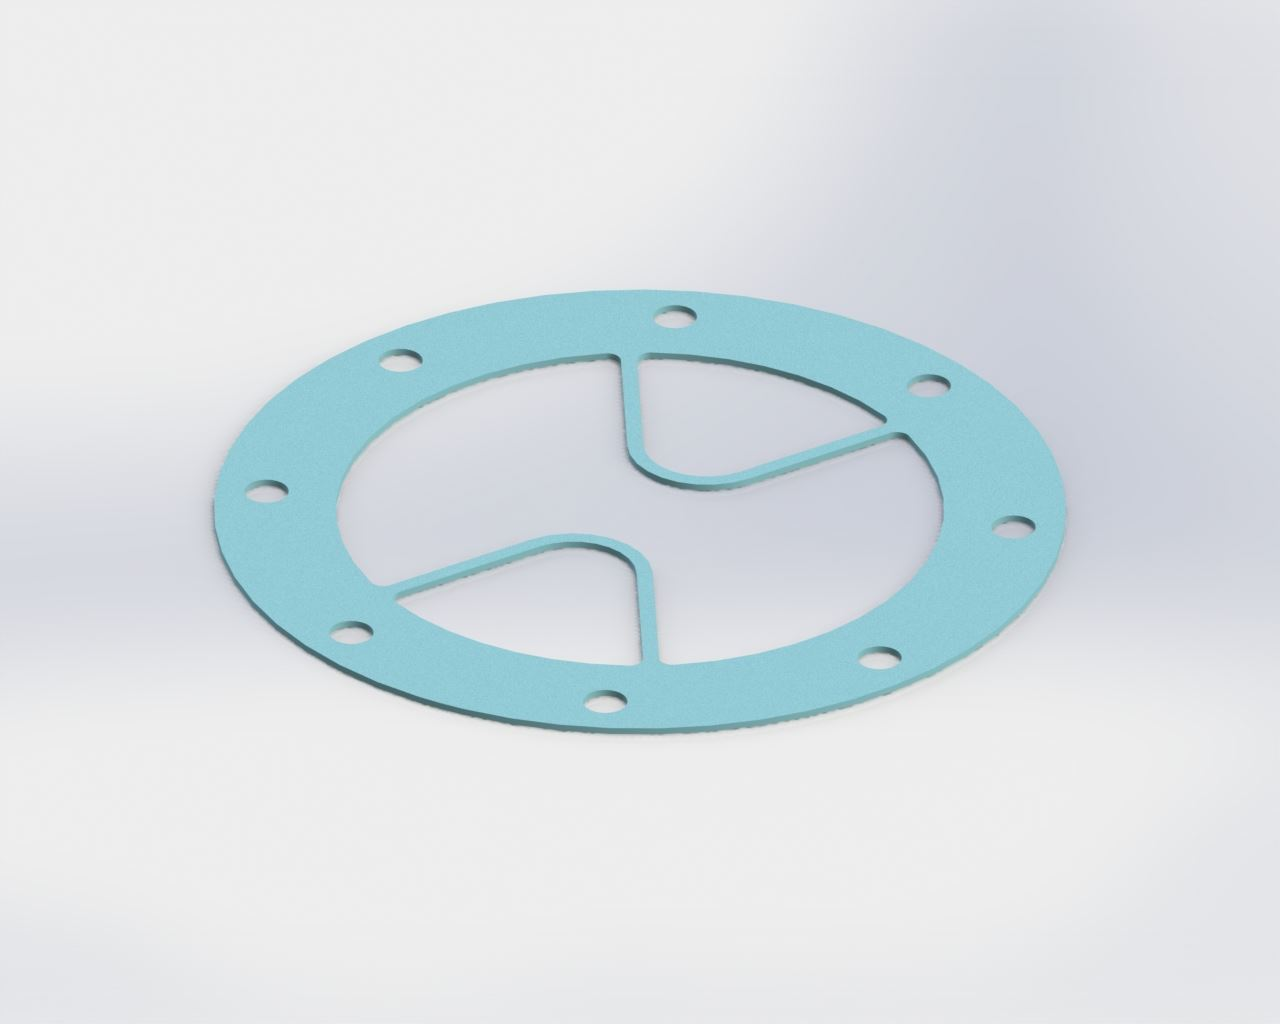 Picture of 9754-0490, REPLACEMENT PARTS FOR STAINLESS STEEL STRAITUBE™ HEAT EXCHANGERS